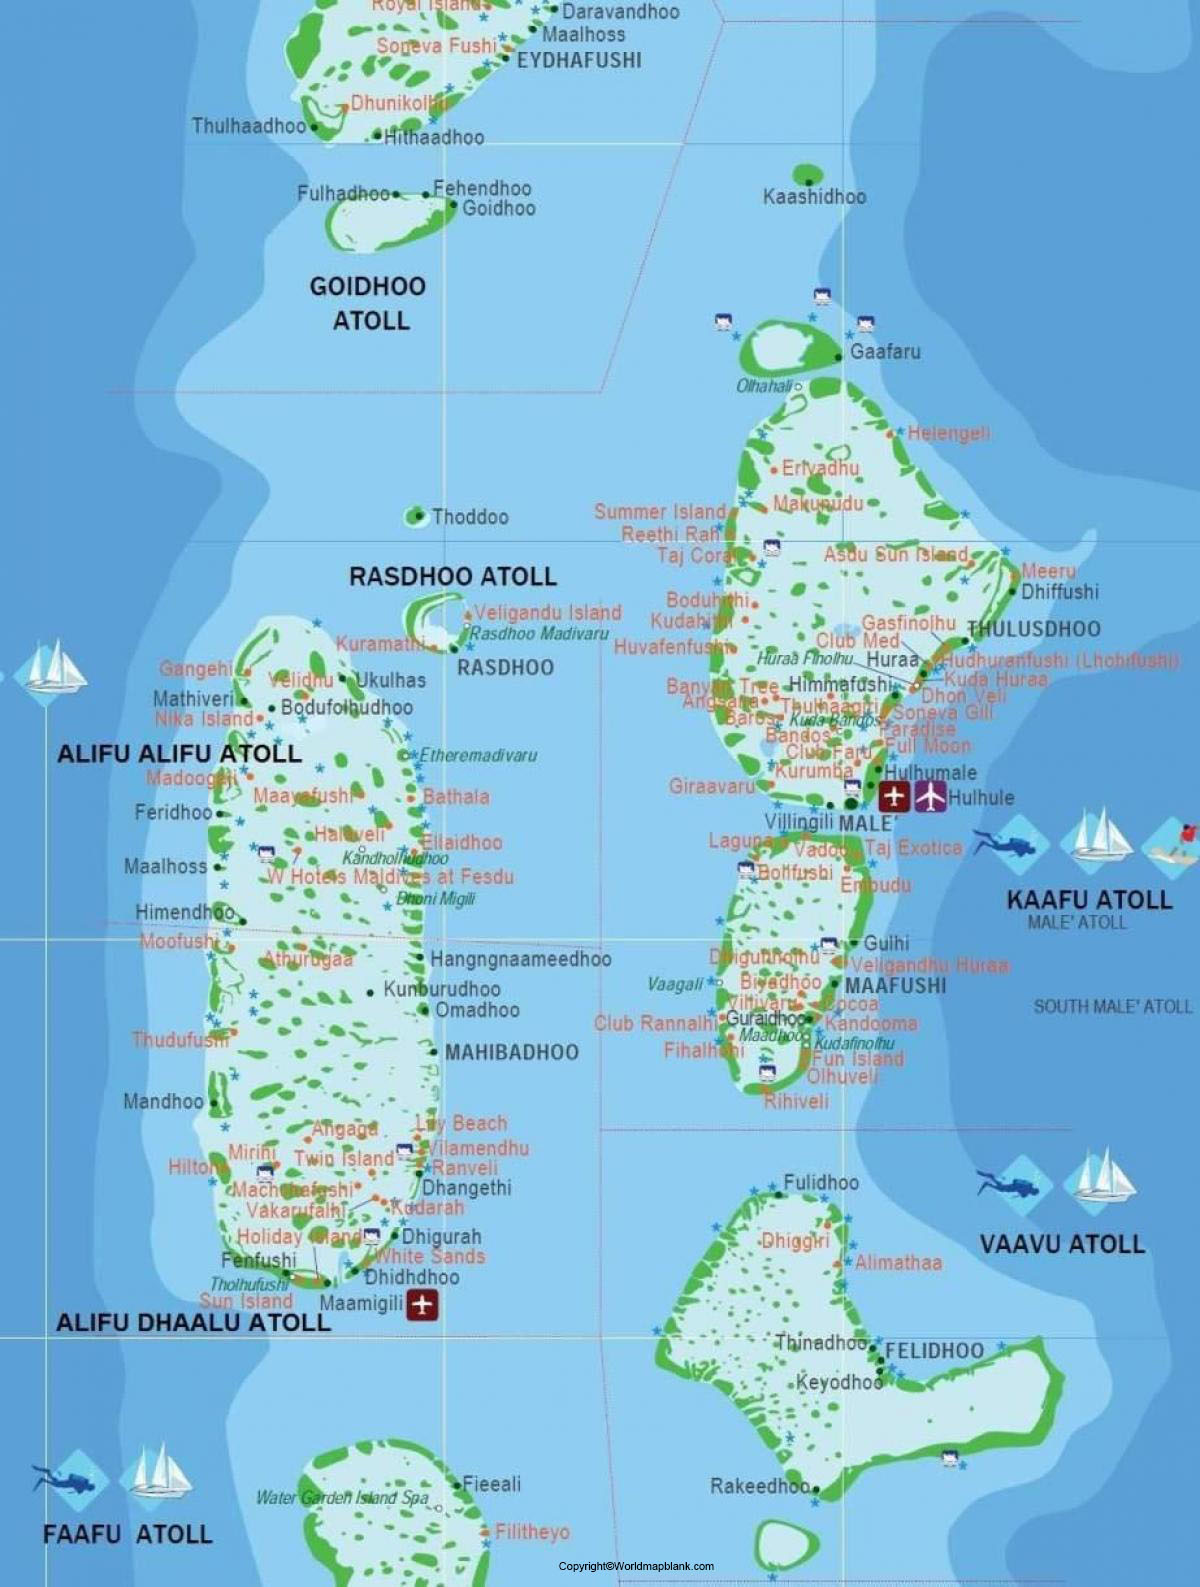 Labeled Map of Maldives with Cities